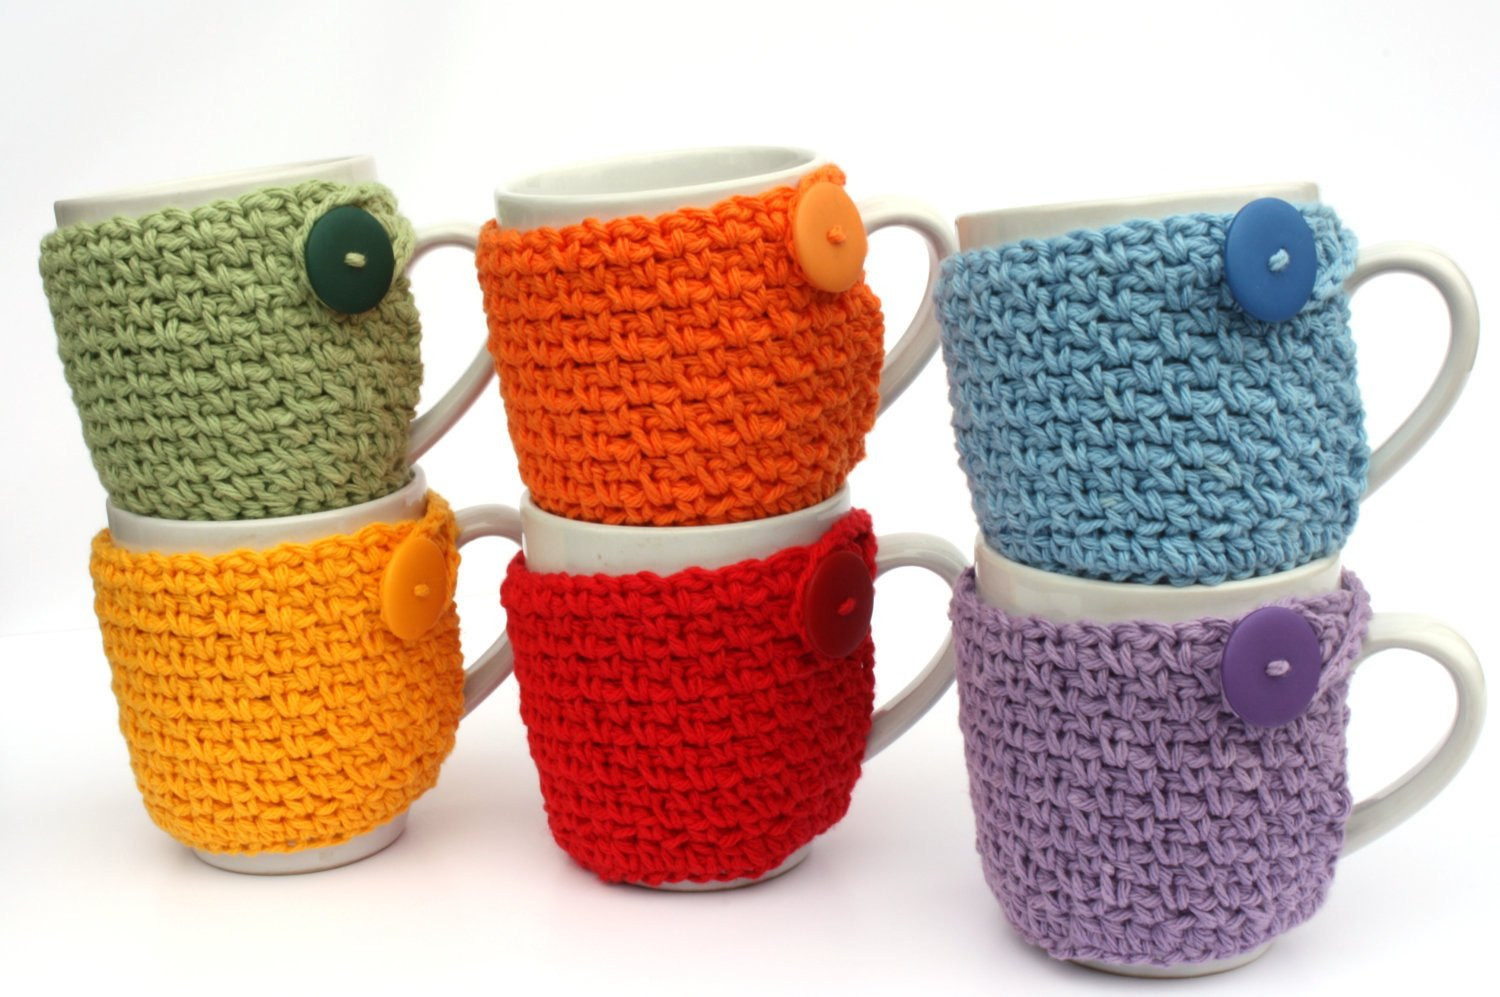 Crochet Coffee Cup Cozy Lovely Coffee Cup Cozy Crochet Cup Sleeve You Pick the by Sweetbriers Of Crochet Coffee Cup Cozy Fresh Creativity Awaits Crochet Coffee Cozy Patterns Stitch